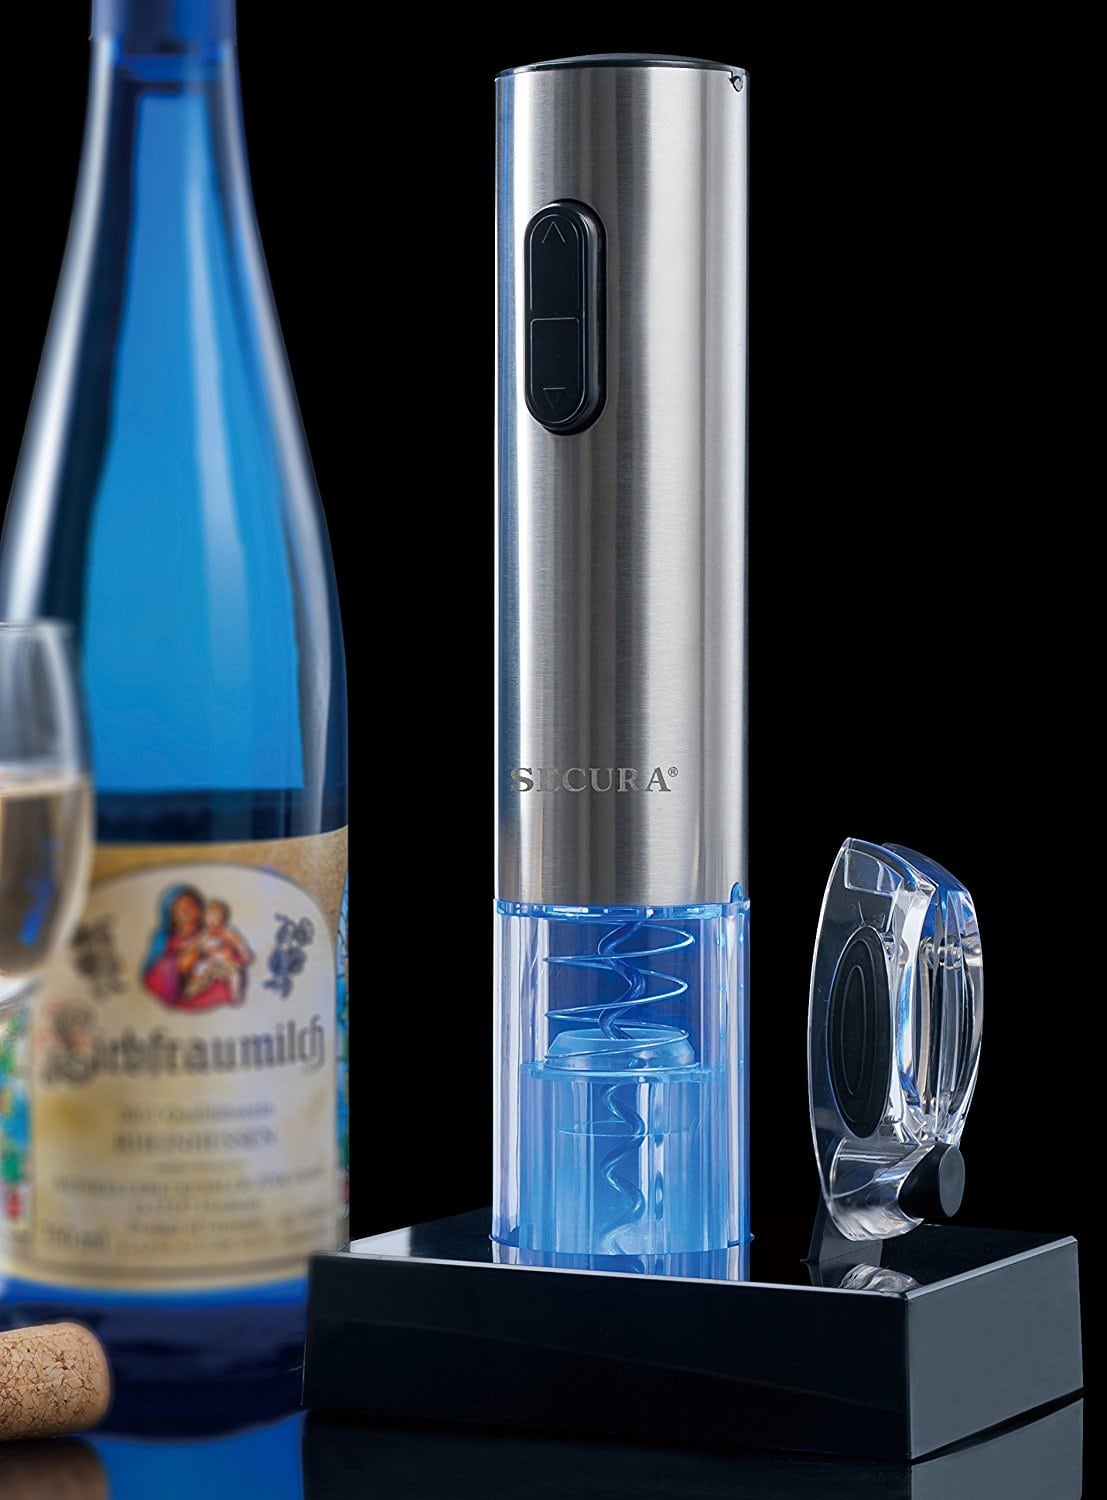 Secura Stainless Steel Electric Wine Opener gifts for realtors